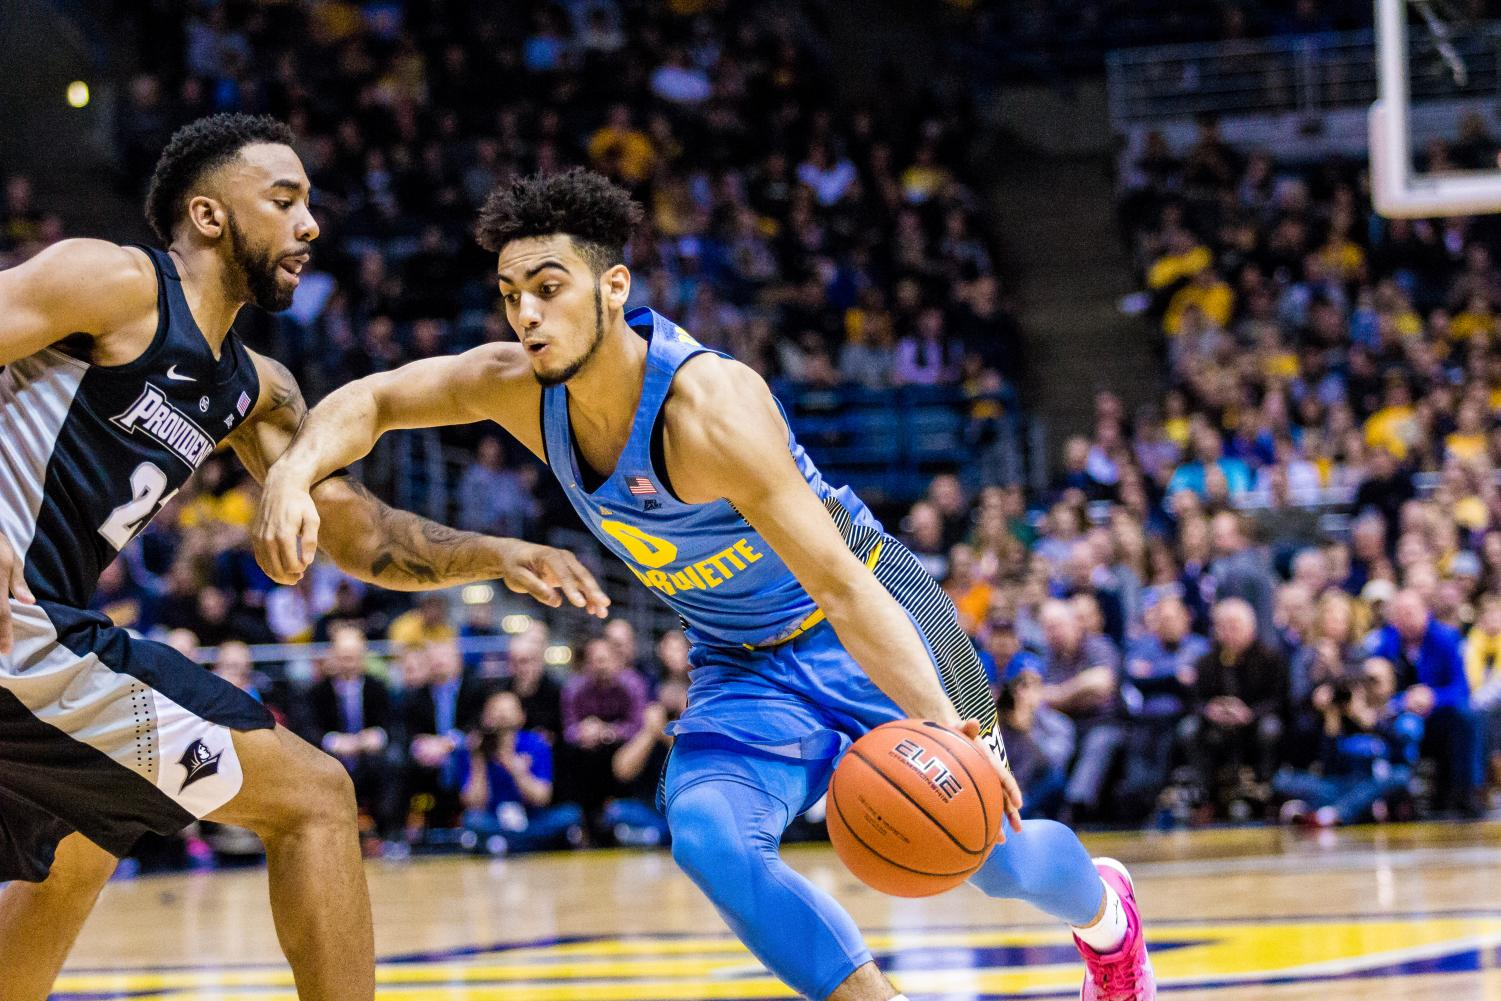 Markus Howard set a program record with 52 points against Providence.